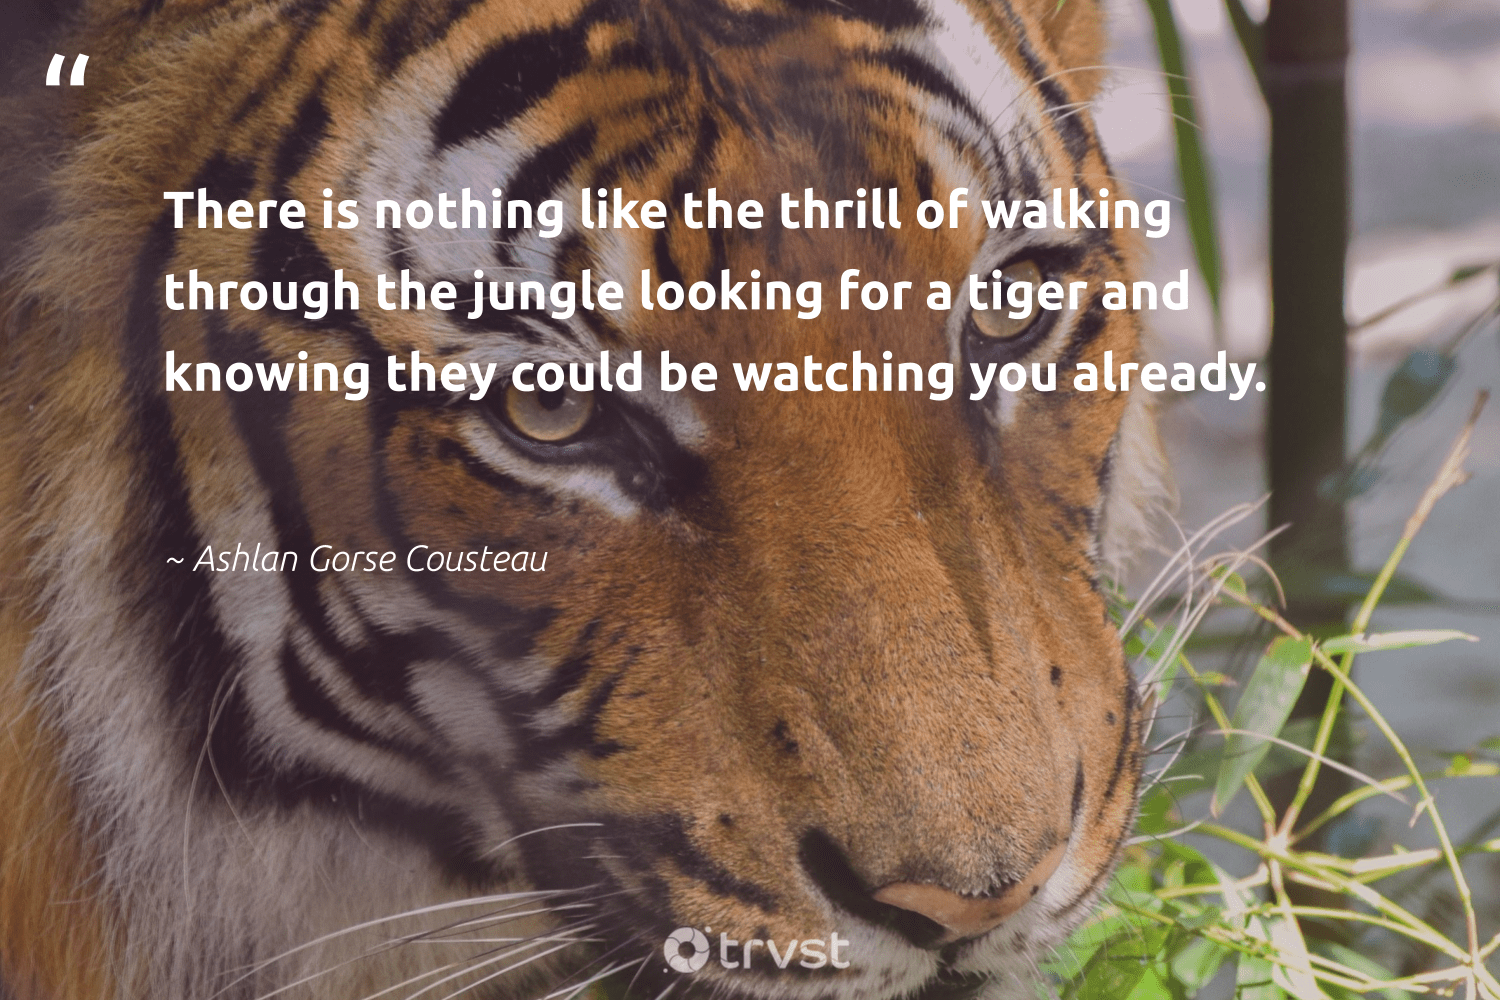 """There is nothing like the thrill of walking through the jungle looking for a tiger and knowing they could be watching you already.""  - Ashlan Gorse Cousteau #trvst #quotes #tiger #splendidanimals #dotherightthing #majesticwildlife #beinspired #perfectnature #dogood #wild #bethechange #animalphotography"